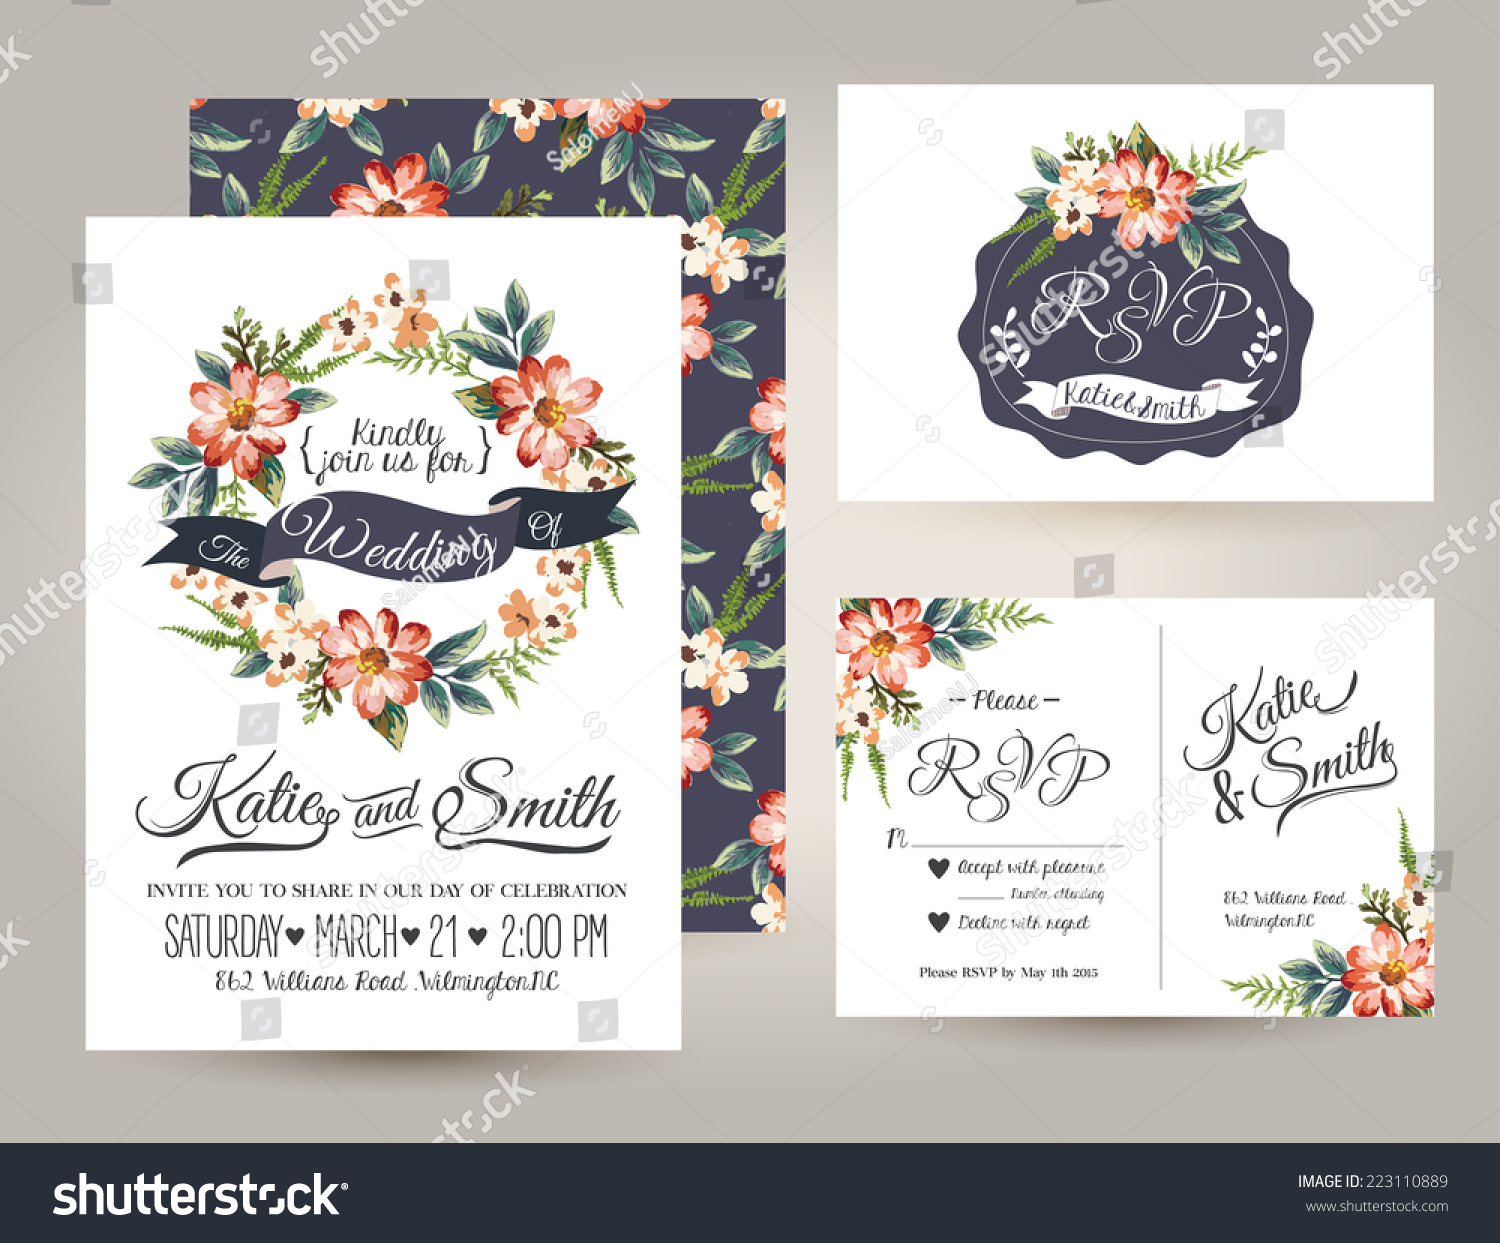 Wedding Invite Card Stock: Wedding Invitation Card Suite Daisy Flower Stock Vector